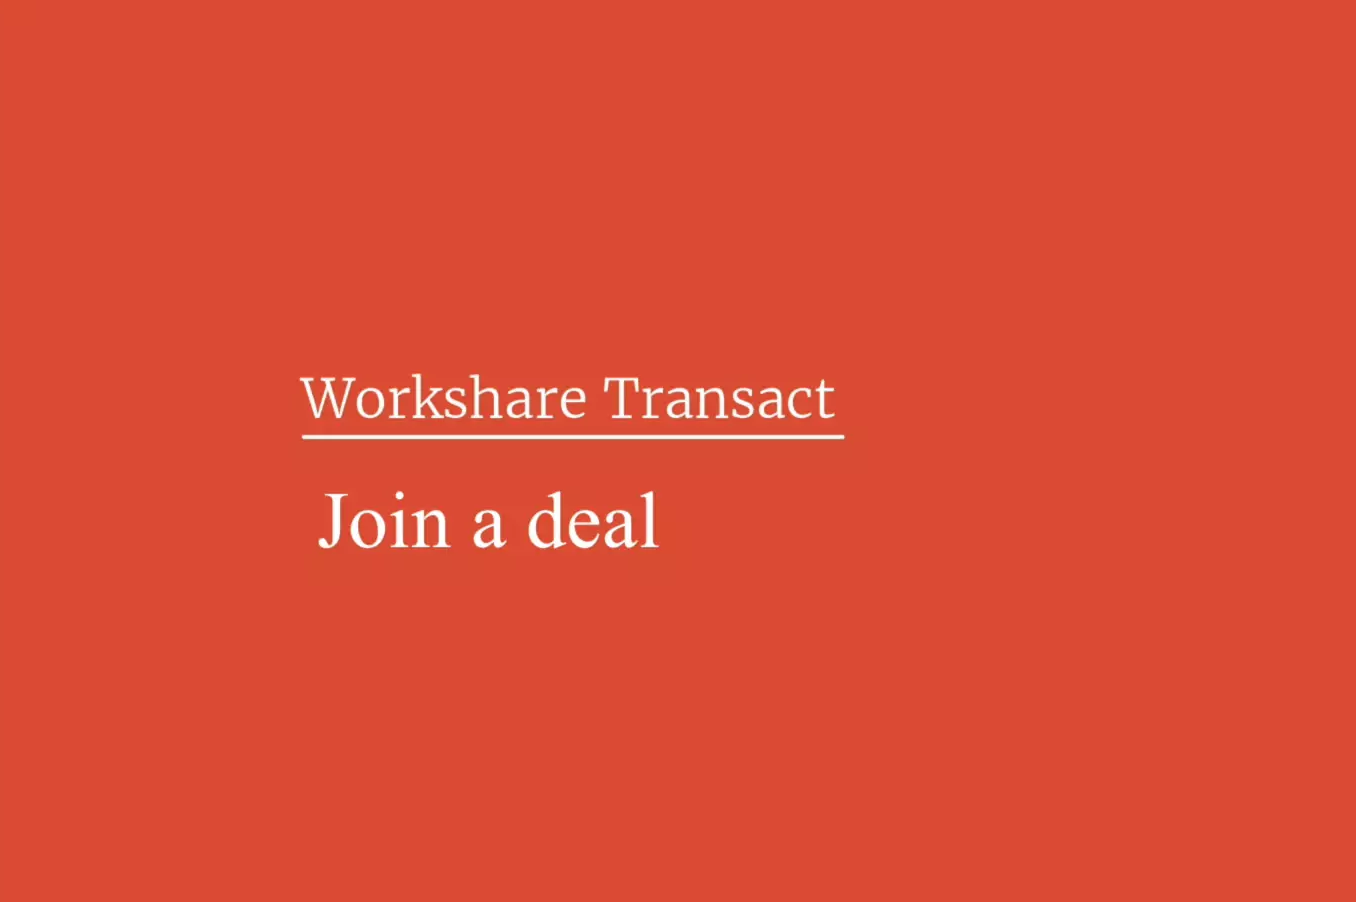 Workshare Transact - Join a deal